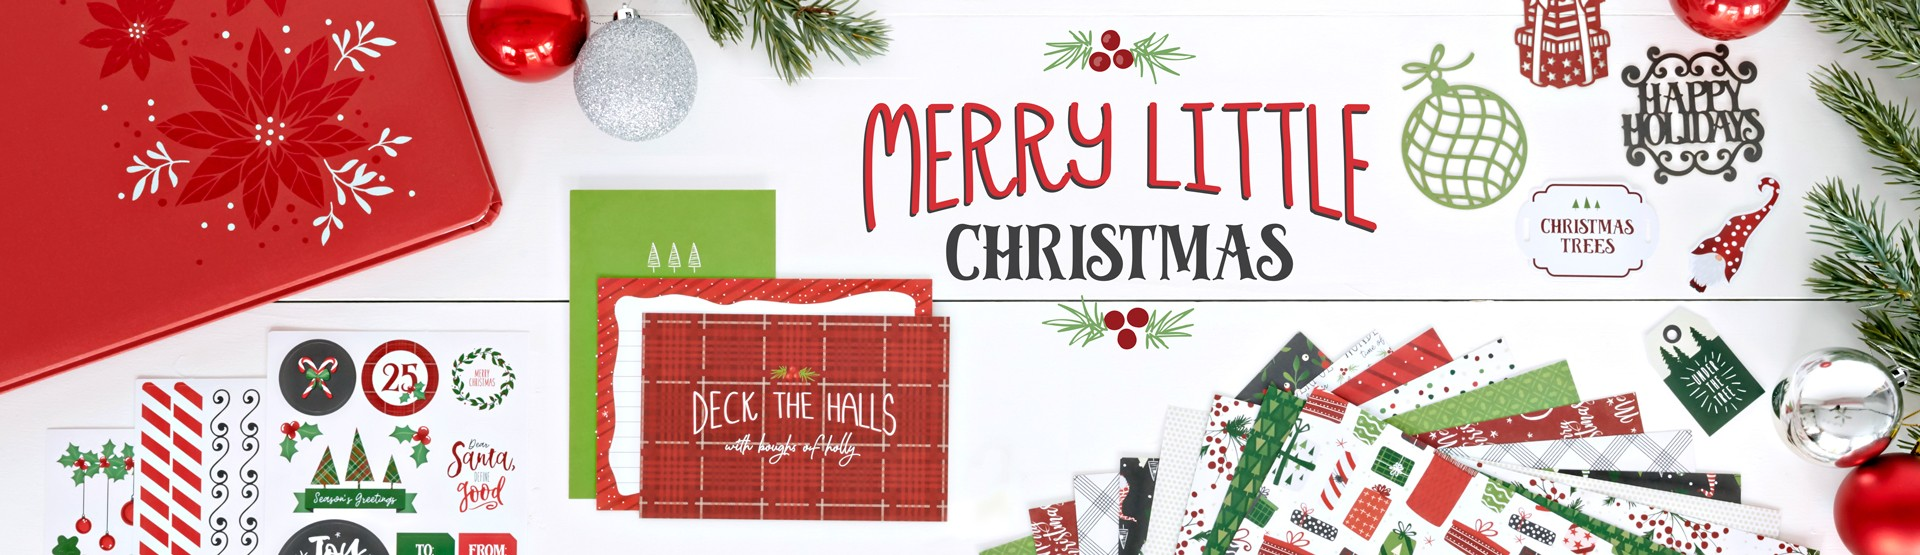 Christmas & Holidays: Merry Little Christmas